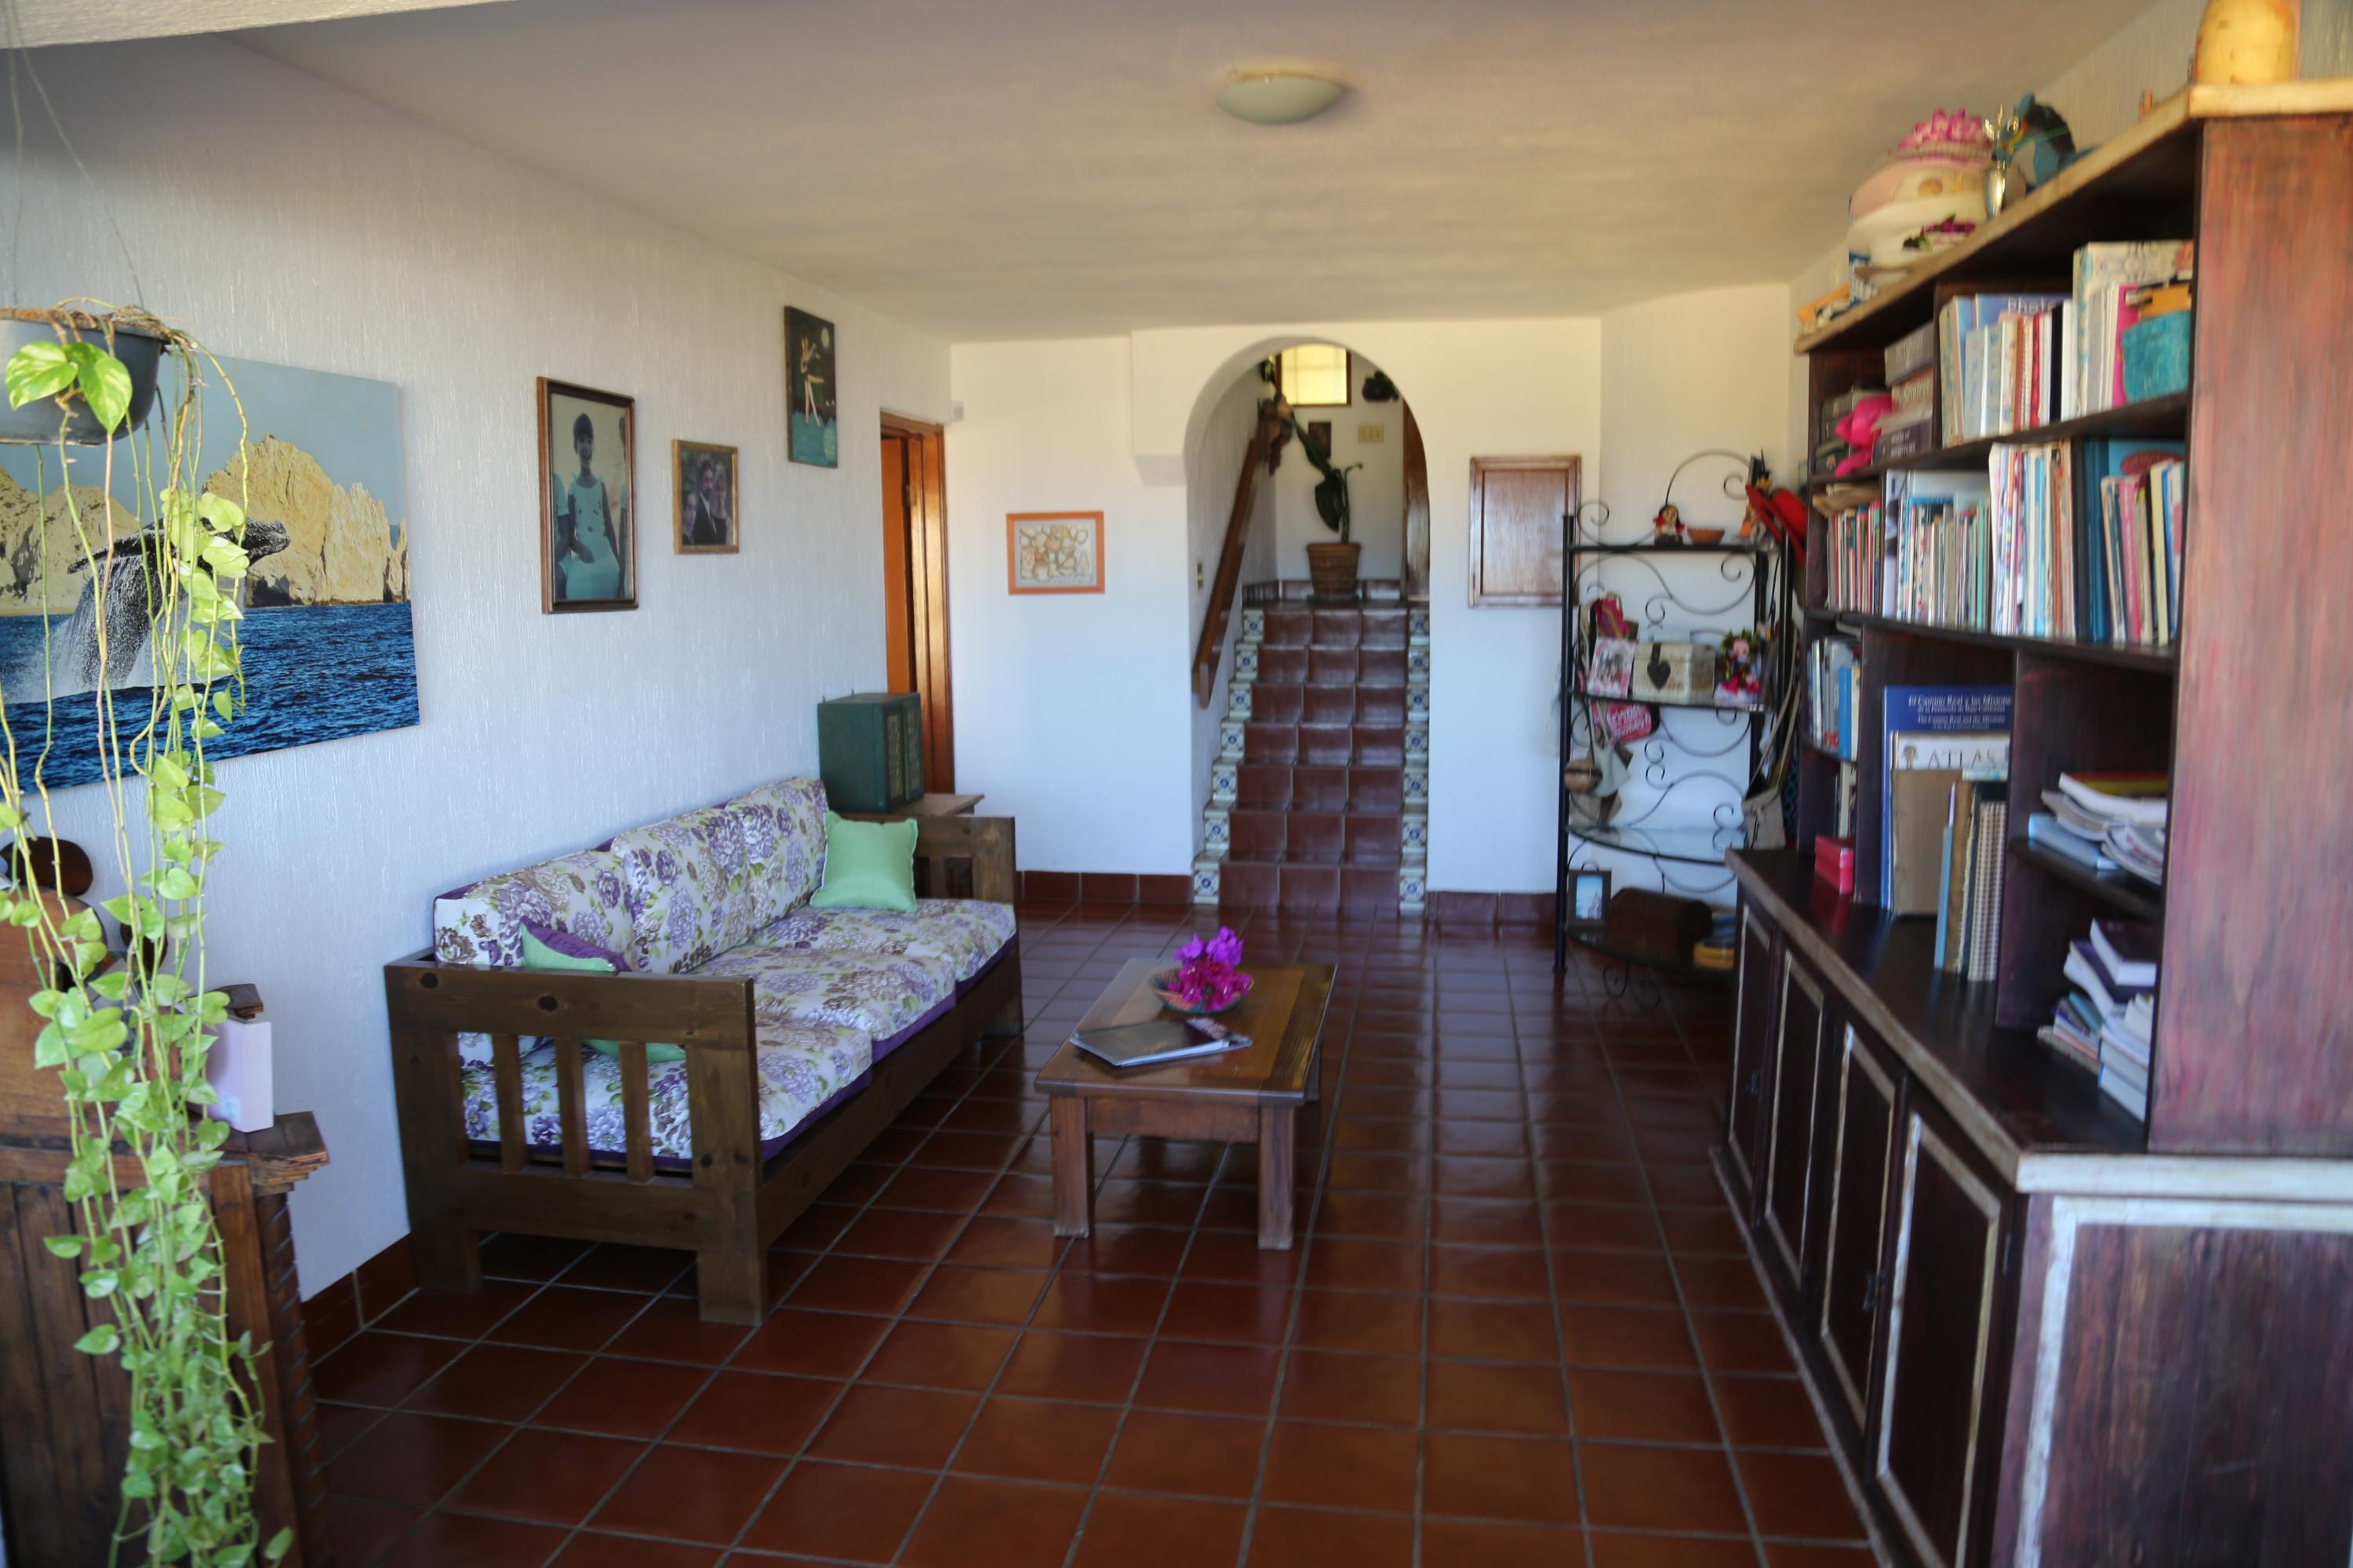 San Jose del Cabo, 3 Bedrooms Bedrooms, ,3 BathroomsBathrooms,House,For Sale,DE GOLF SAN JOSE DEL CABO,16-695